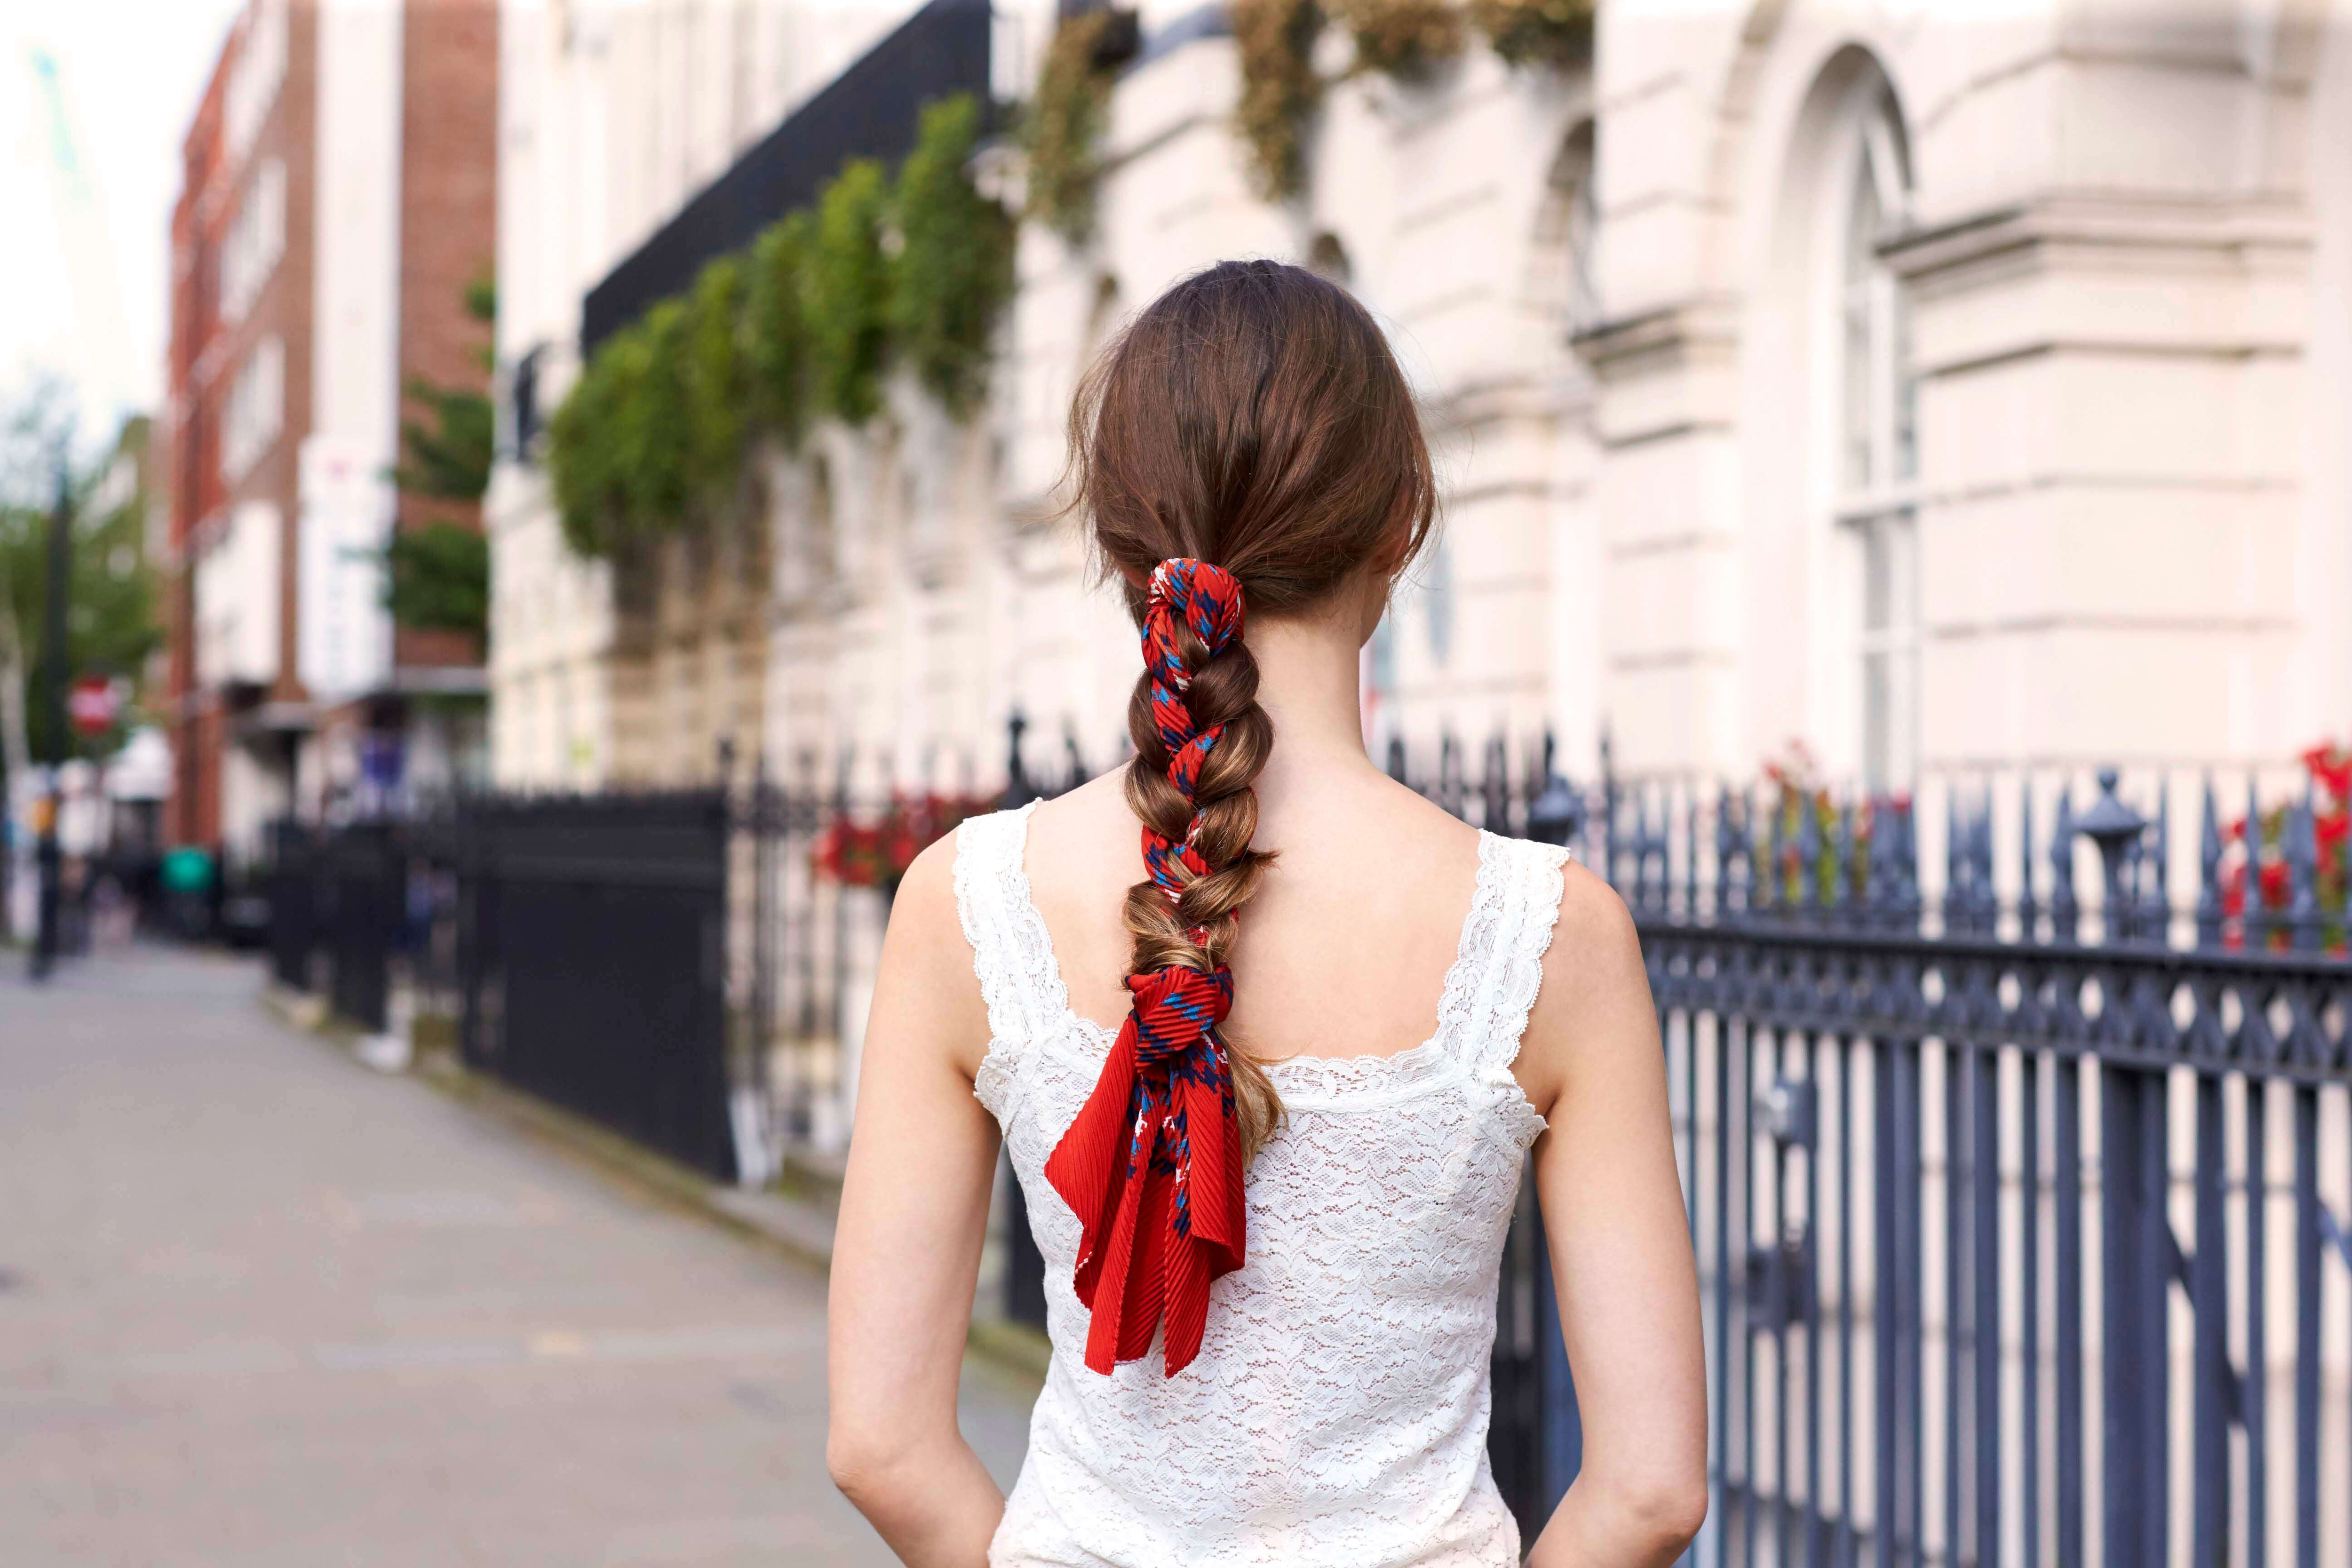 back view of woman with interwoven red scarf braid